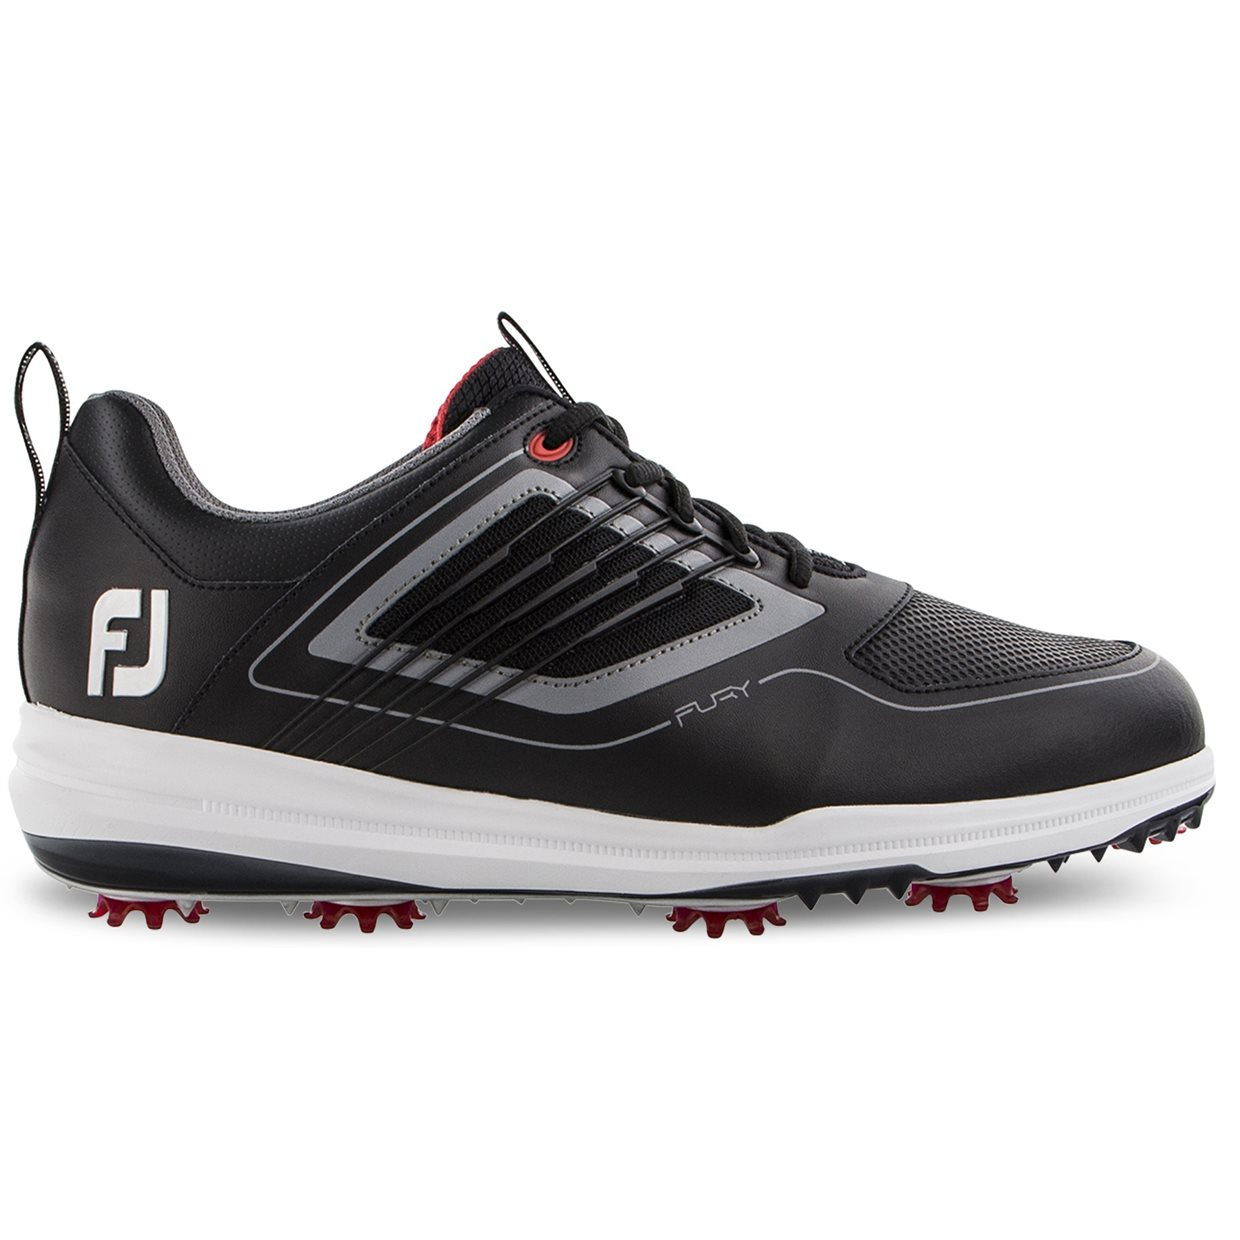 845585a70692 FootJoy FJ Fury Golf Shoes at GlobalGolf.com